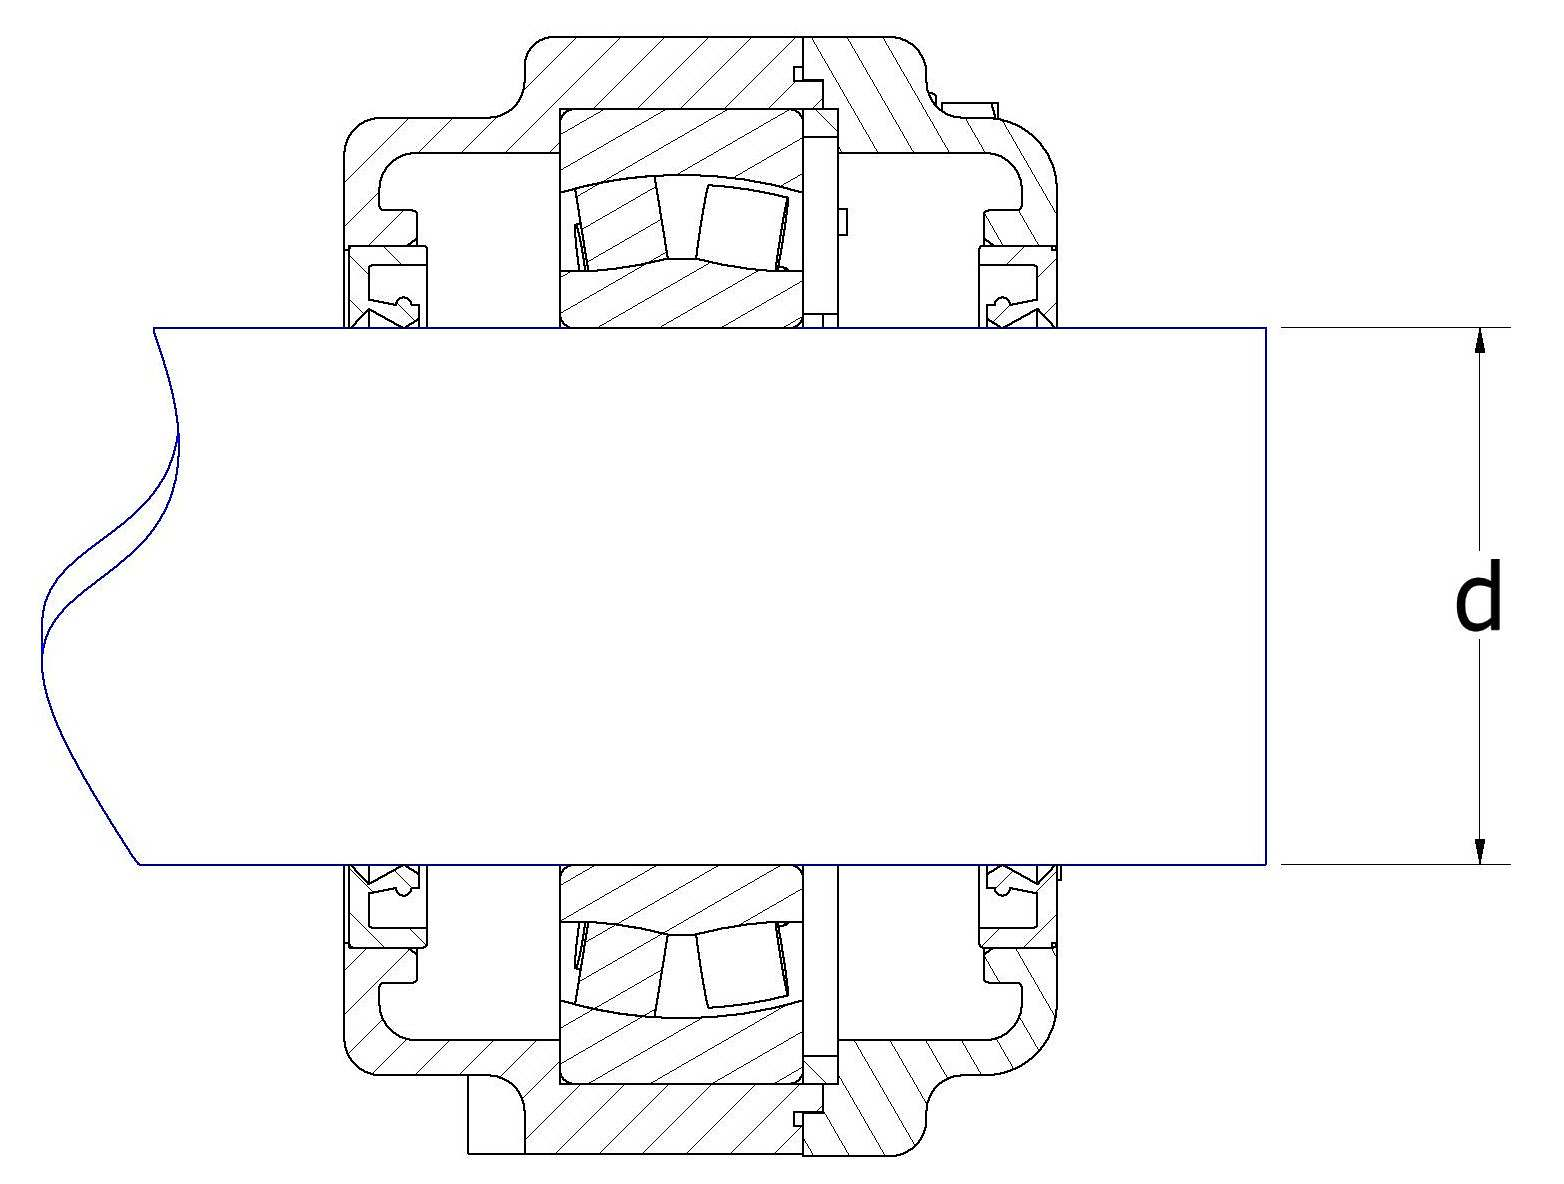 Spherical roller bearing unit wiht cilindrical bearing explanation drawing